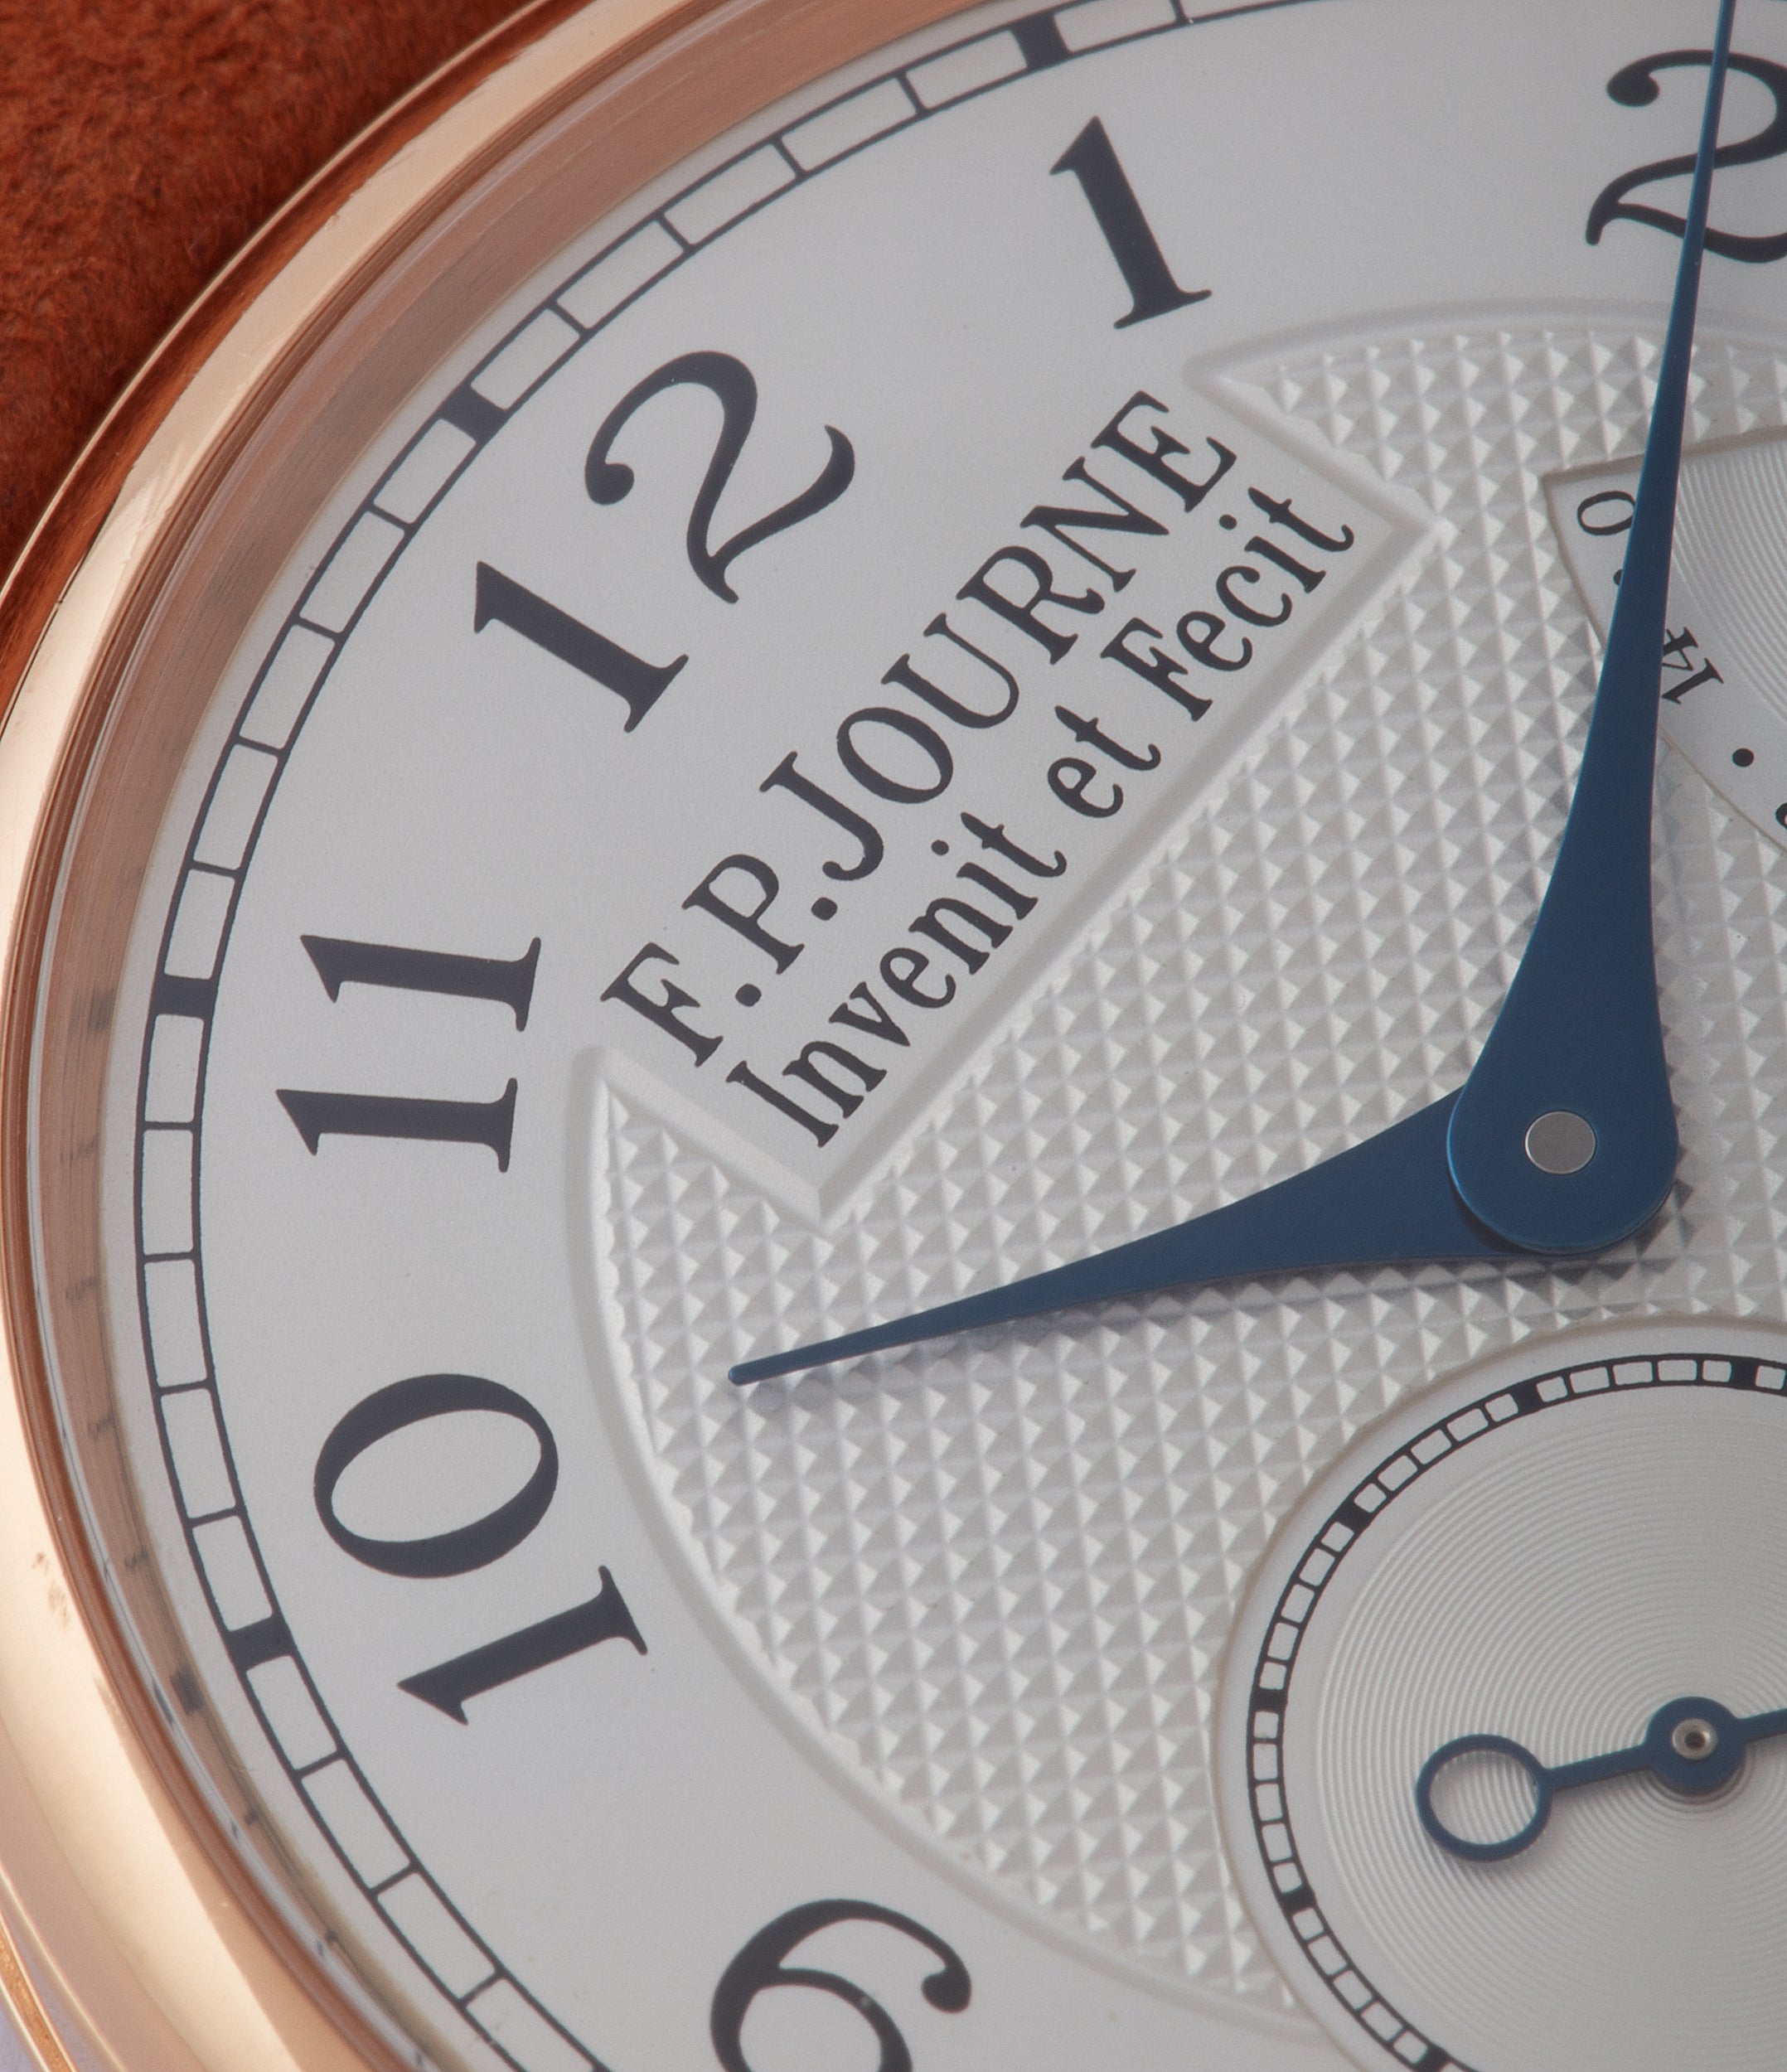 silver dial F. P. Journe Chronometre Souverain CS.RG.38 rose gold silver dial watch for sale online at A Collected Man London UK specialist of rare watches